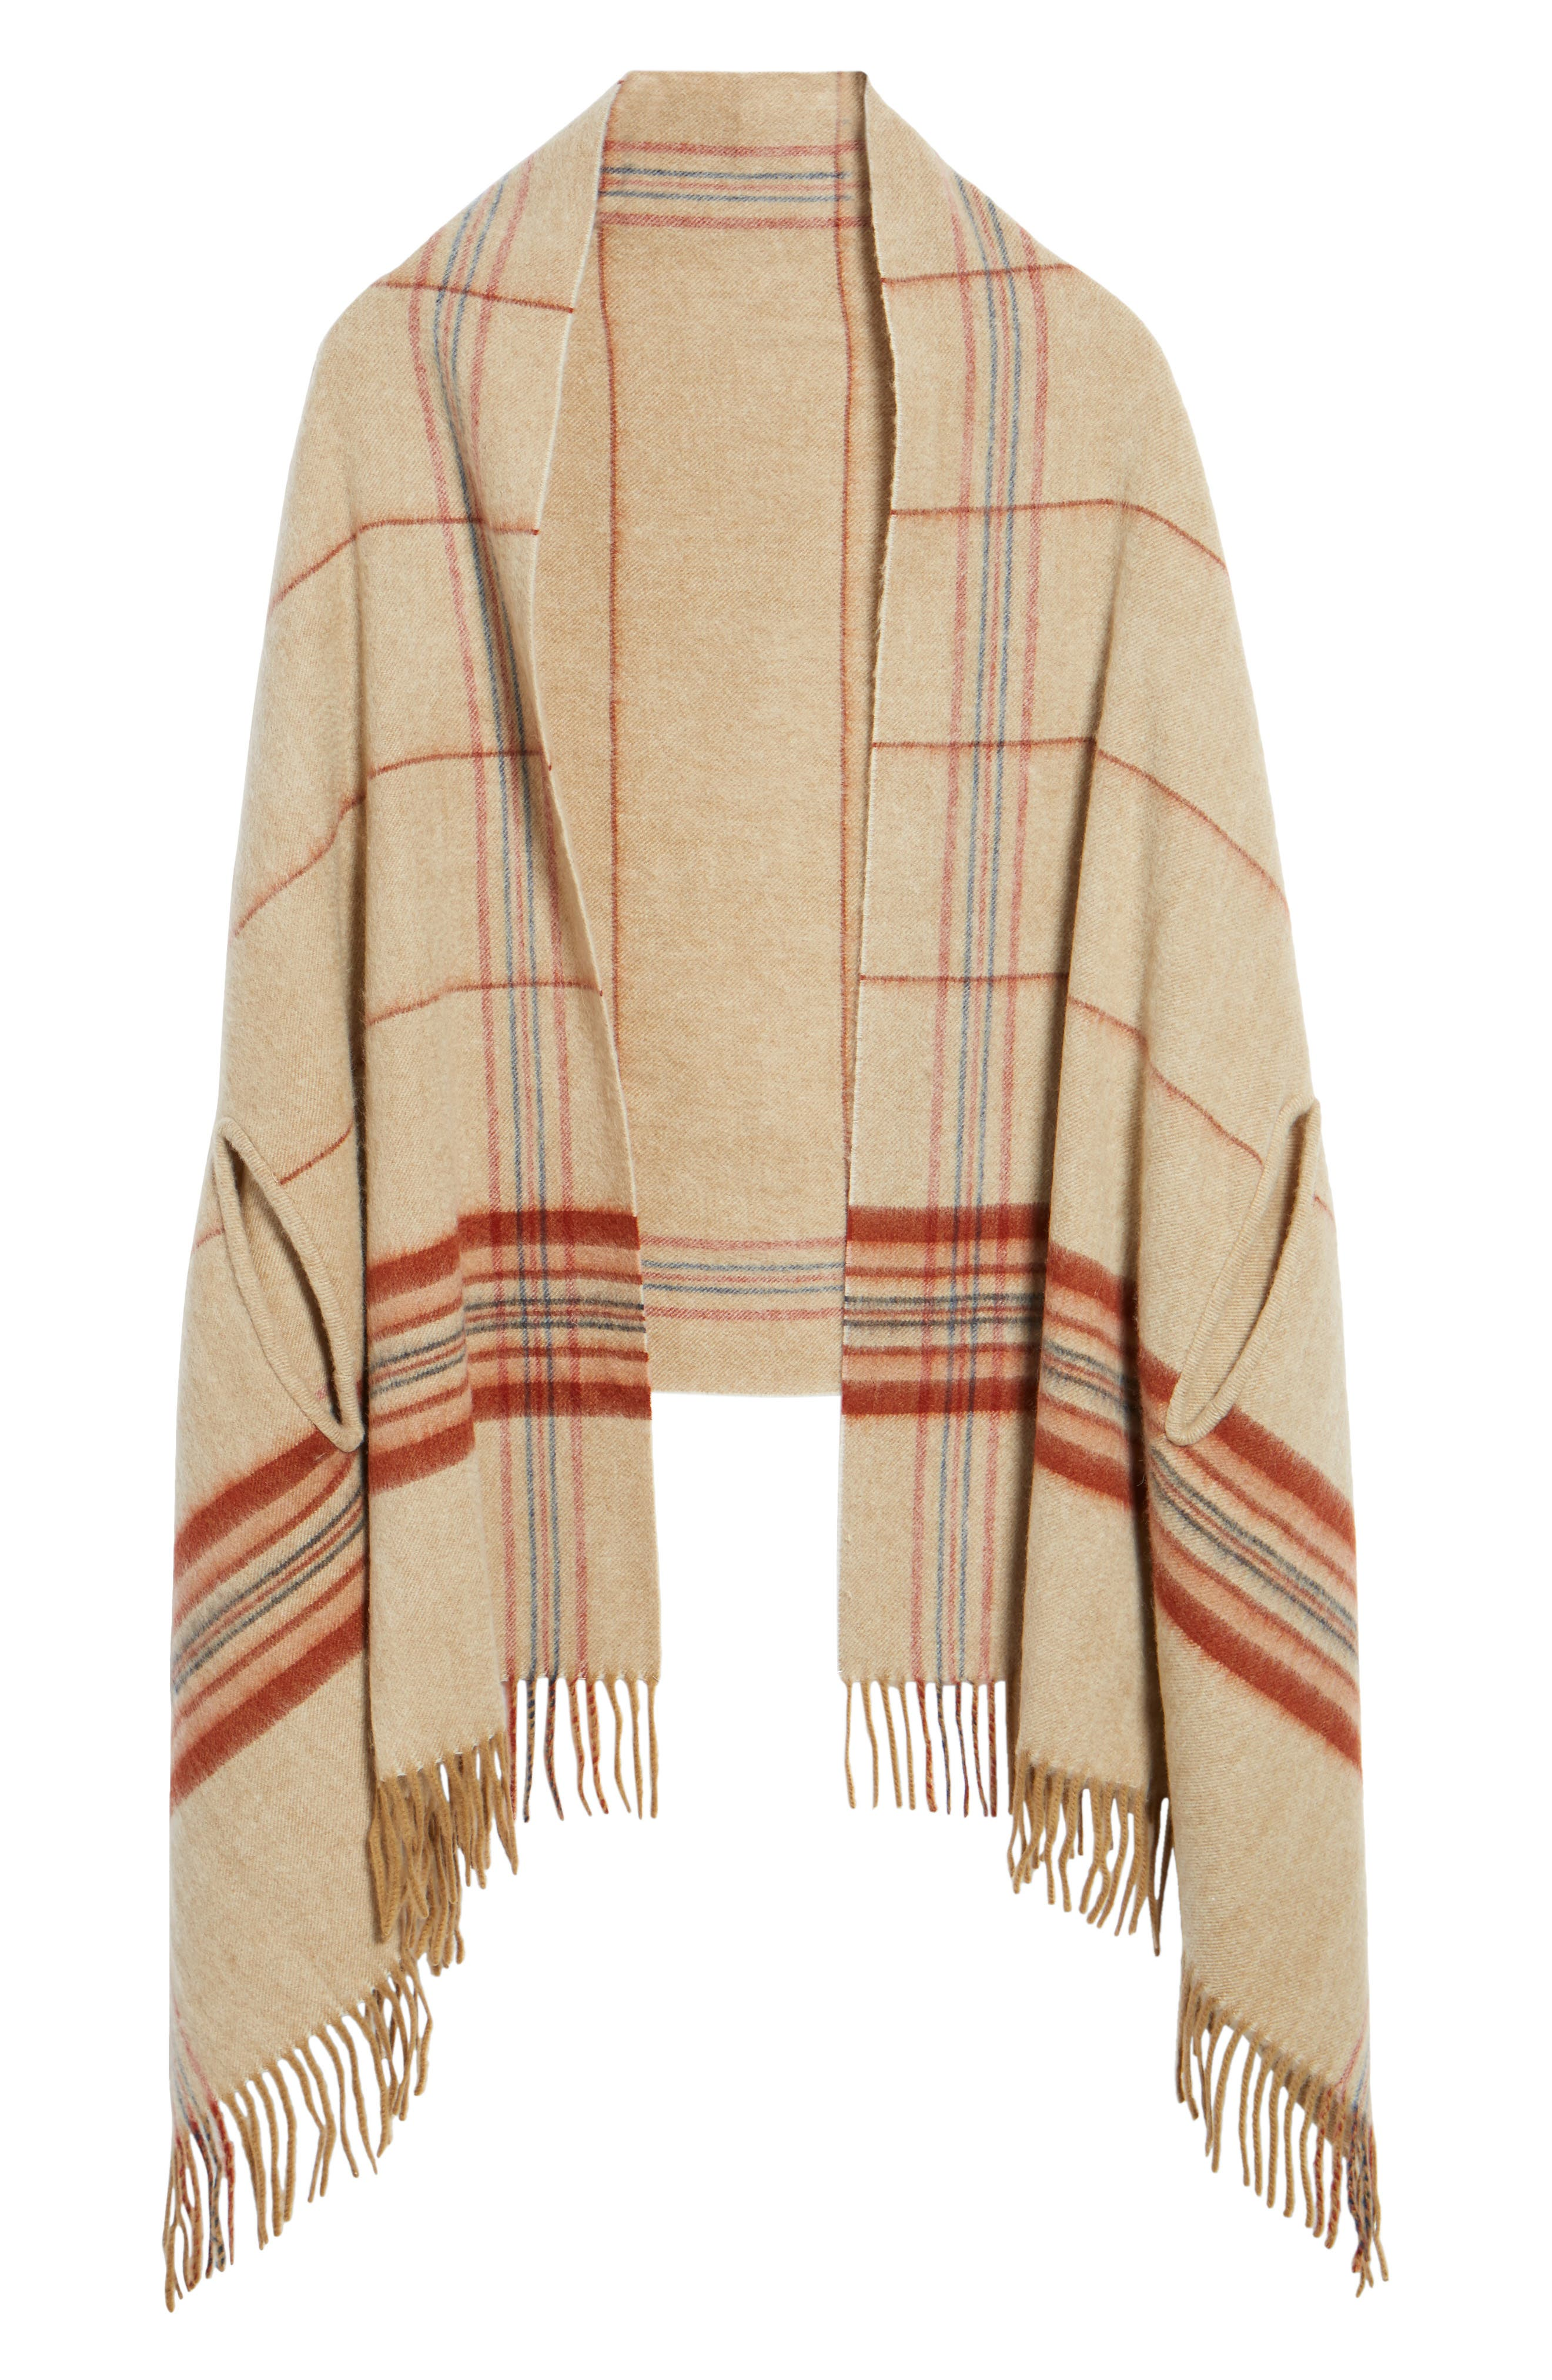 Placed Plaid Cape Scarf,                             Alternate thumbnail 6, color,                             Dark Camel Multi